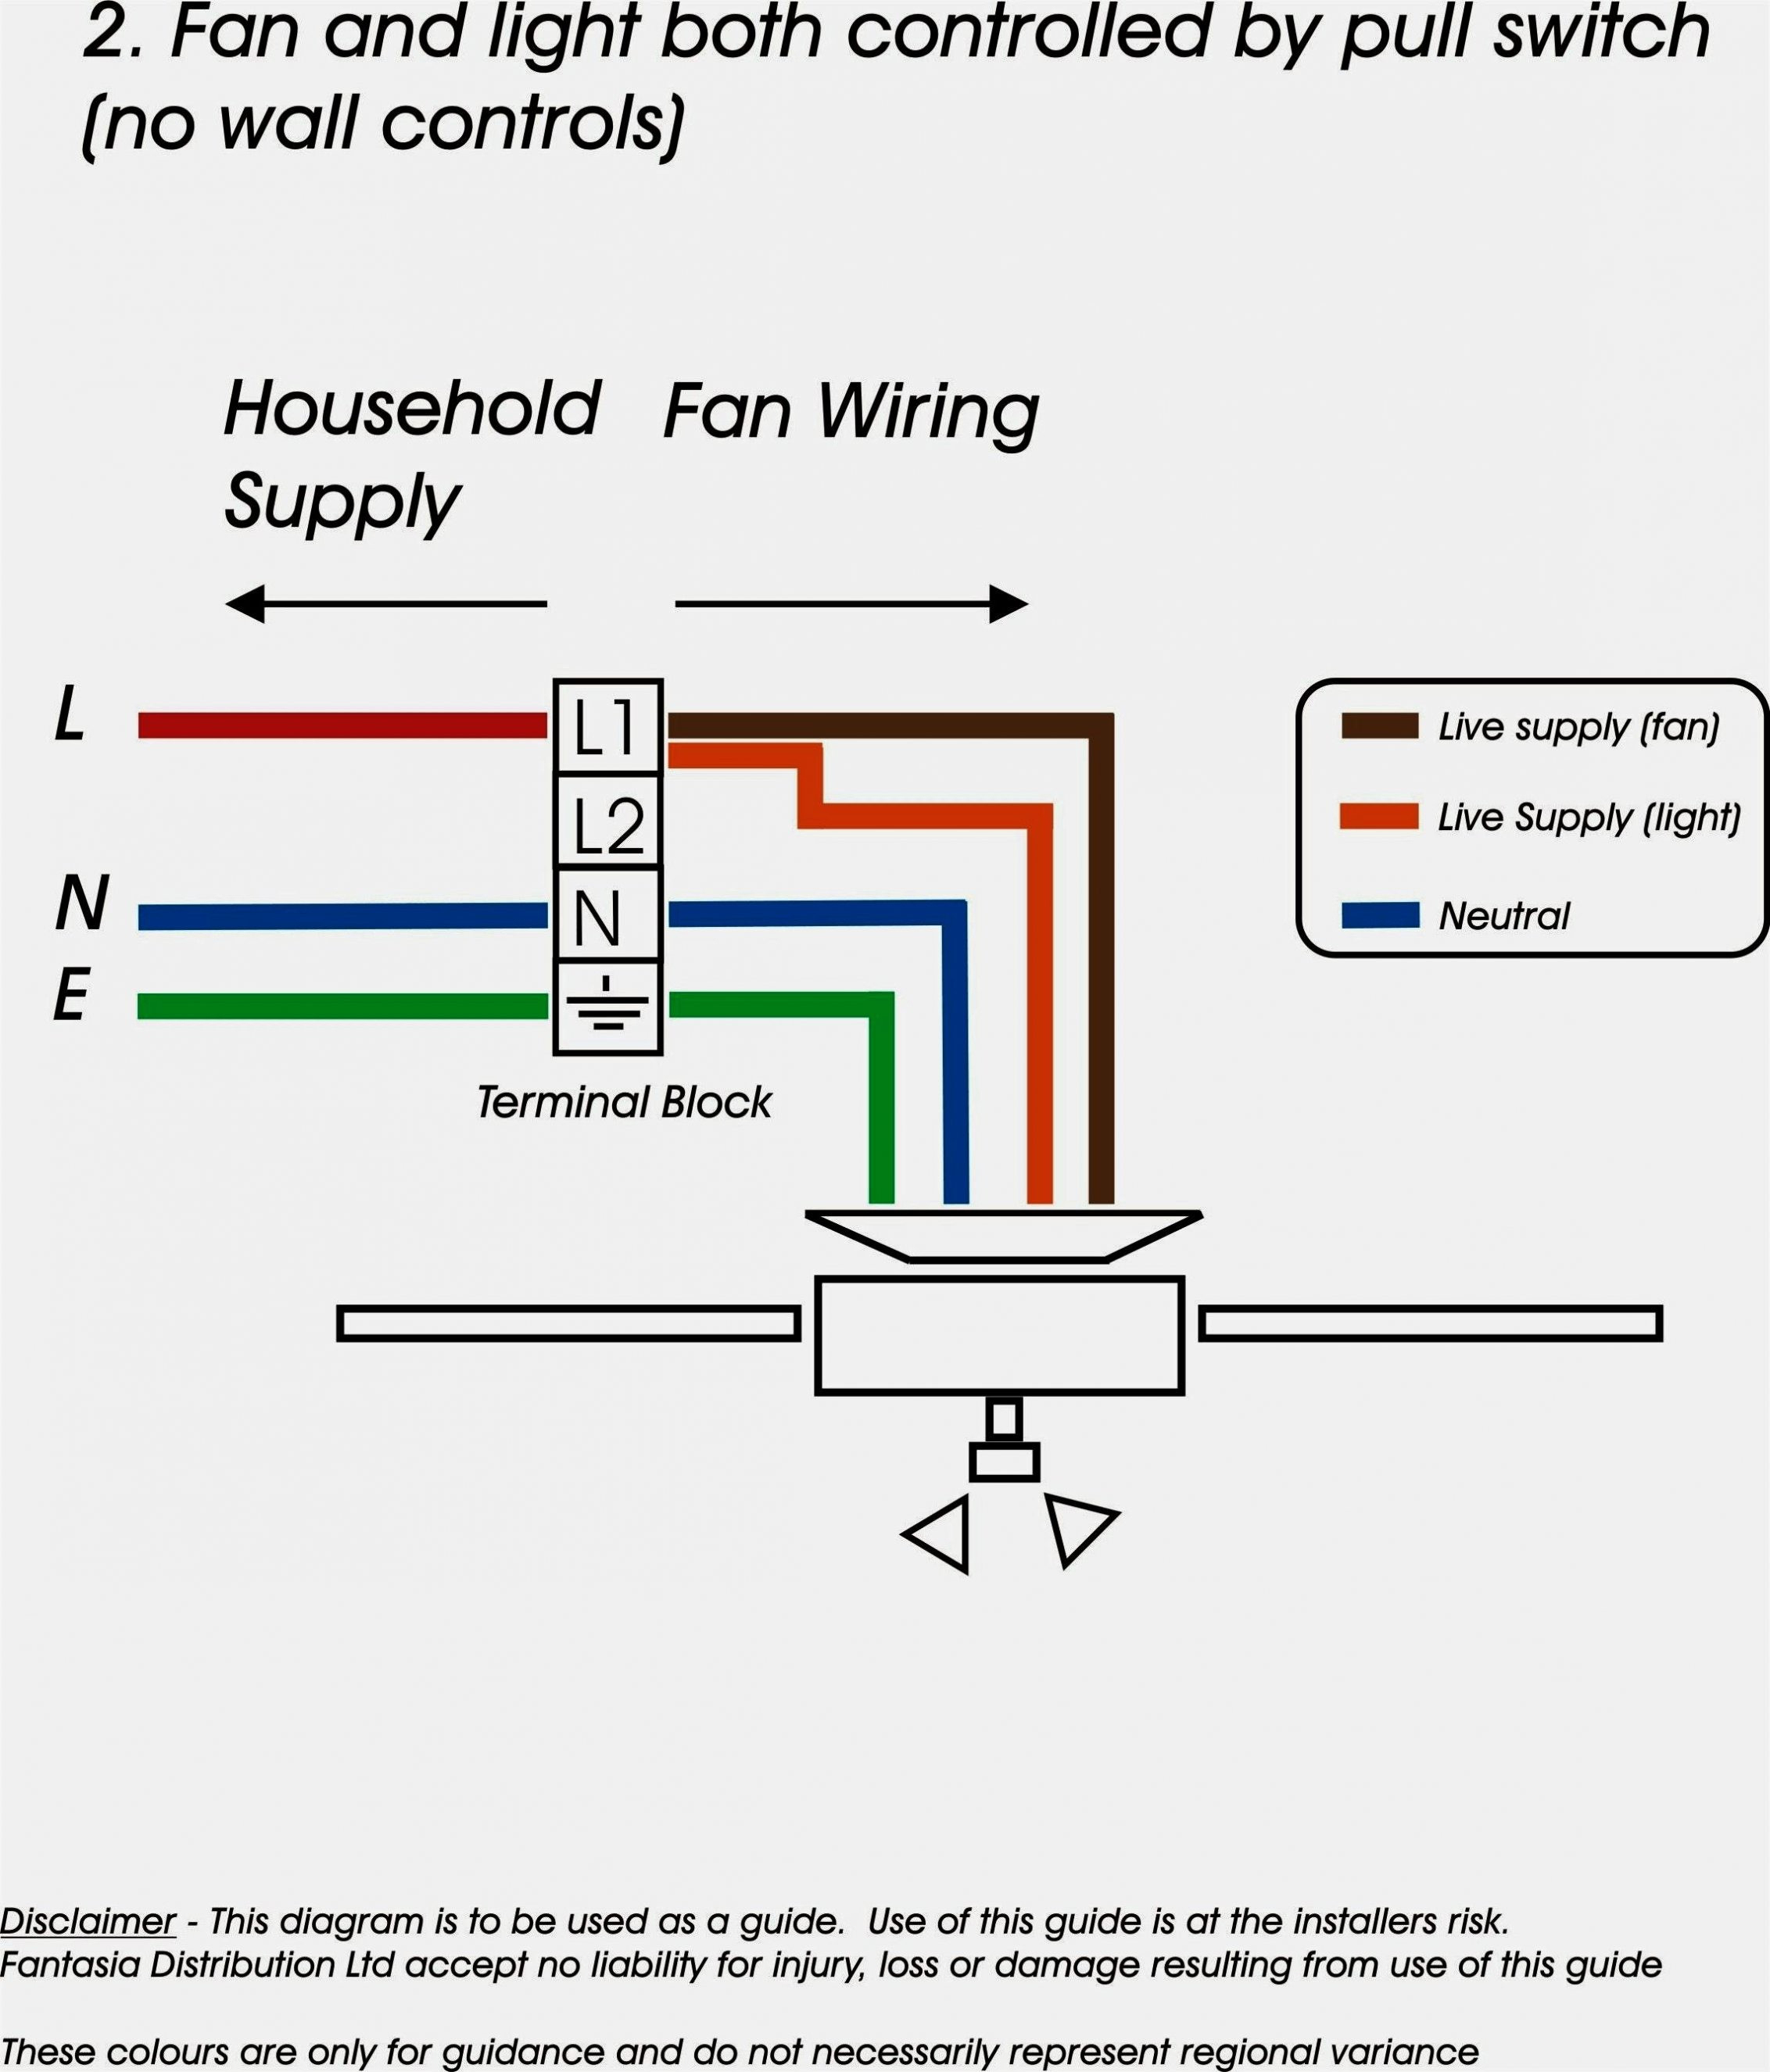 Fan Pull Chain Switch Wiring Diagram - All Wiring Diagram - 3 Speed Pull Chain Switch Wiring Diagram